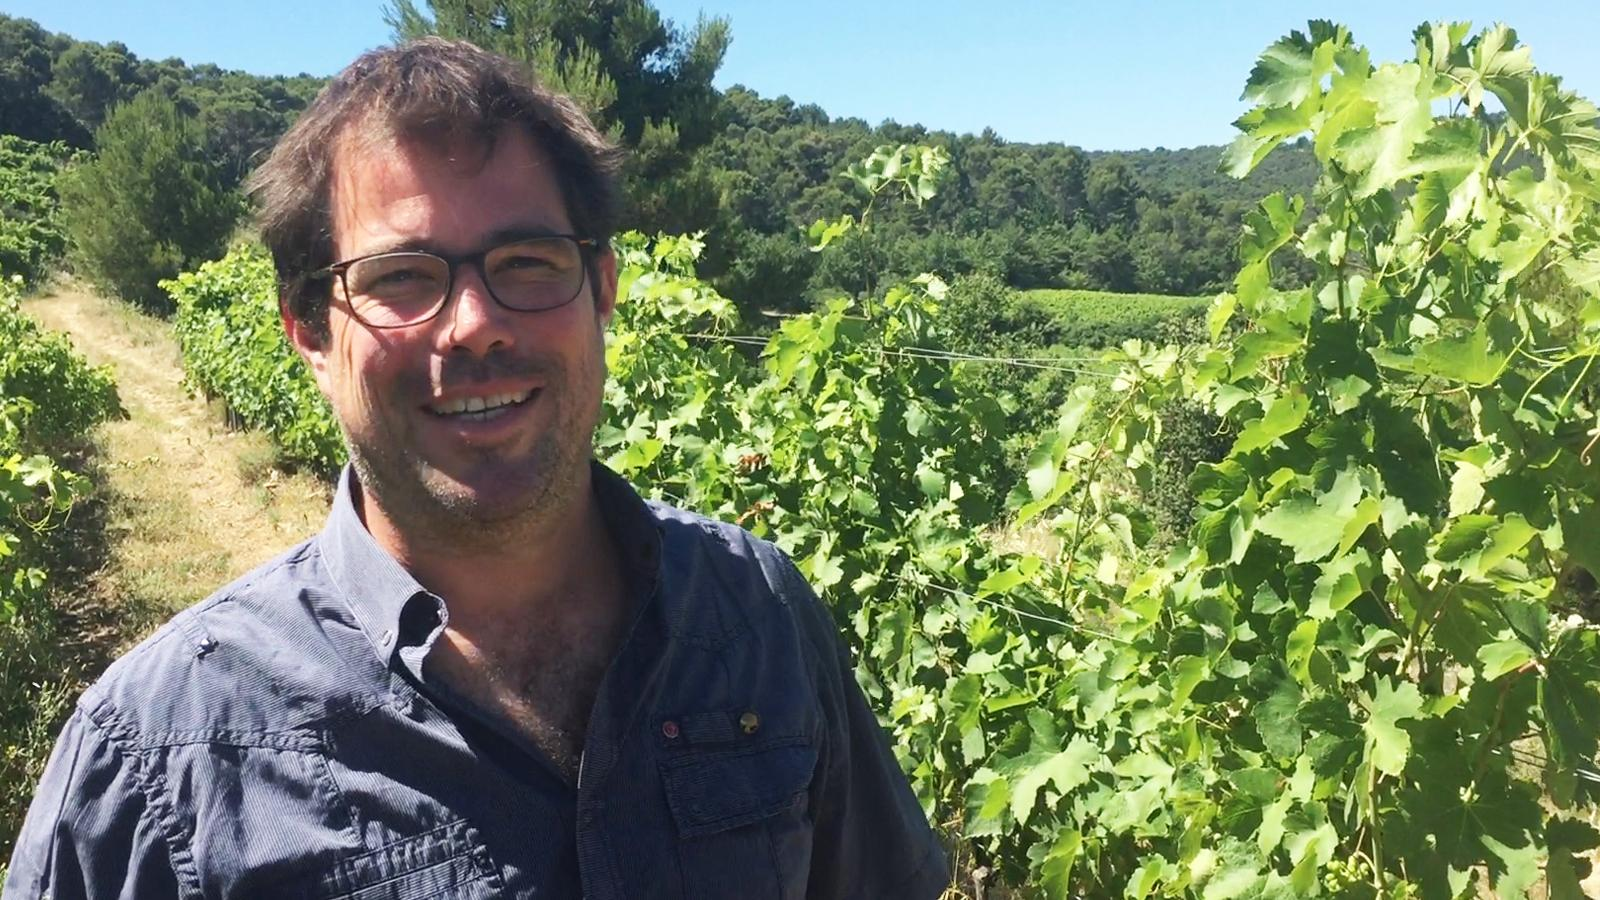 Nicolas Haeni is working hard to improve the vineyard soils at Malmont.